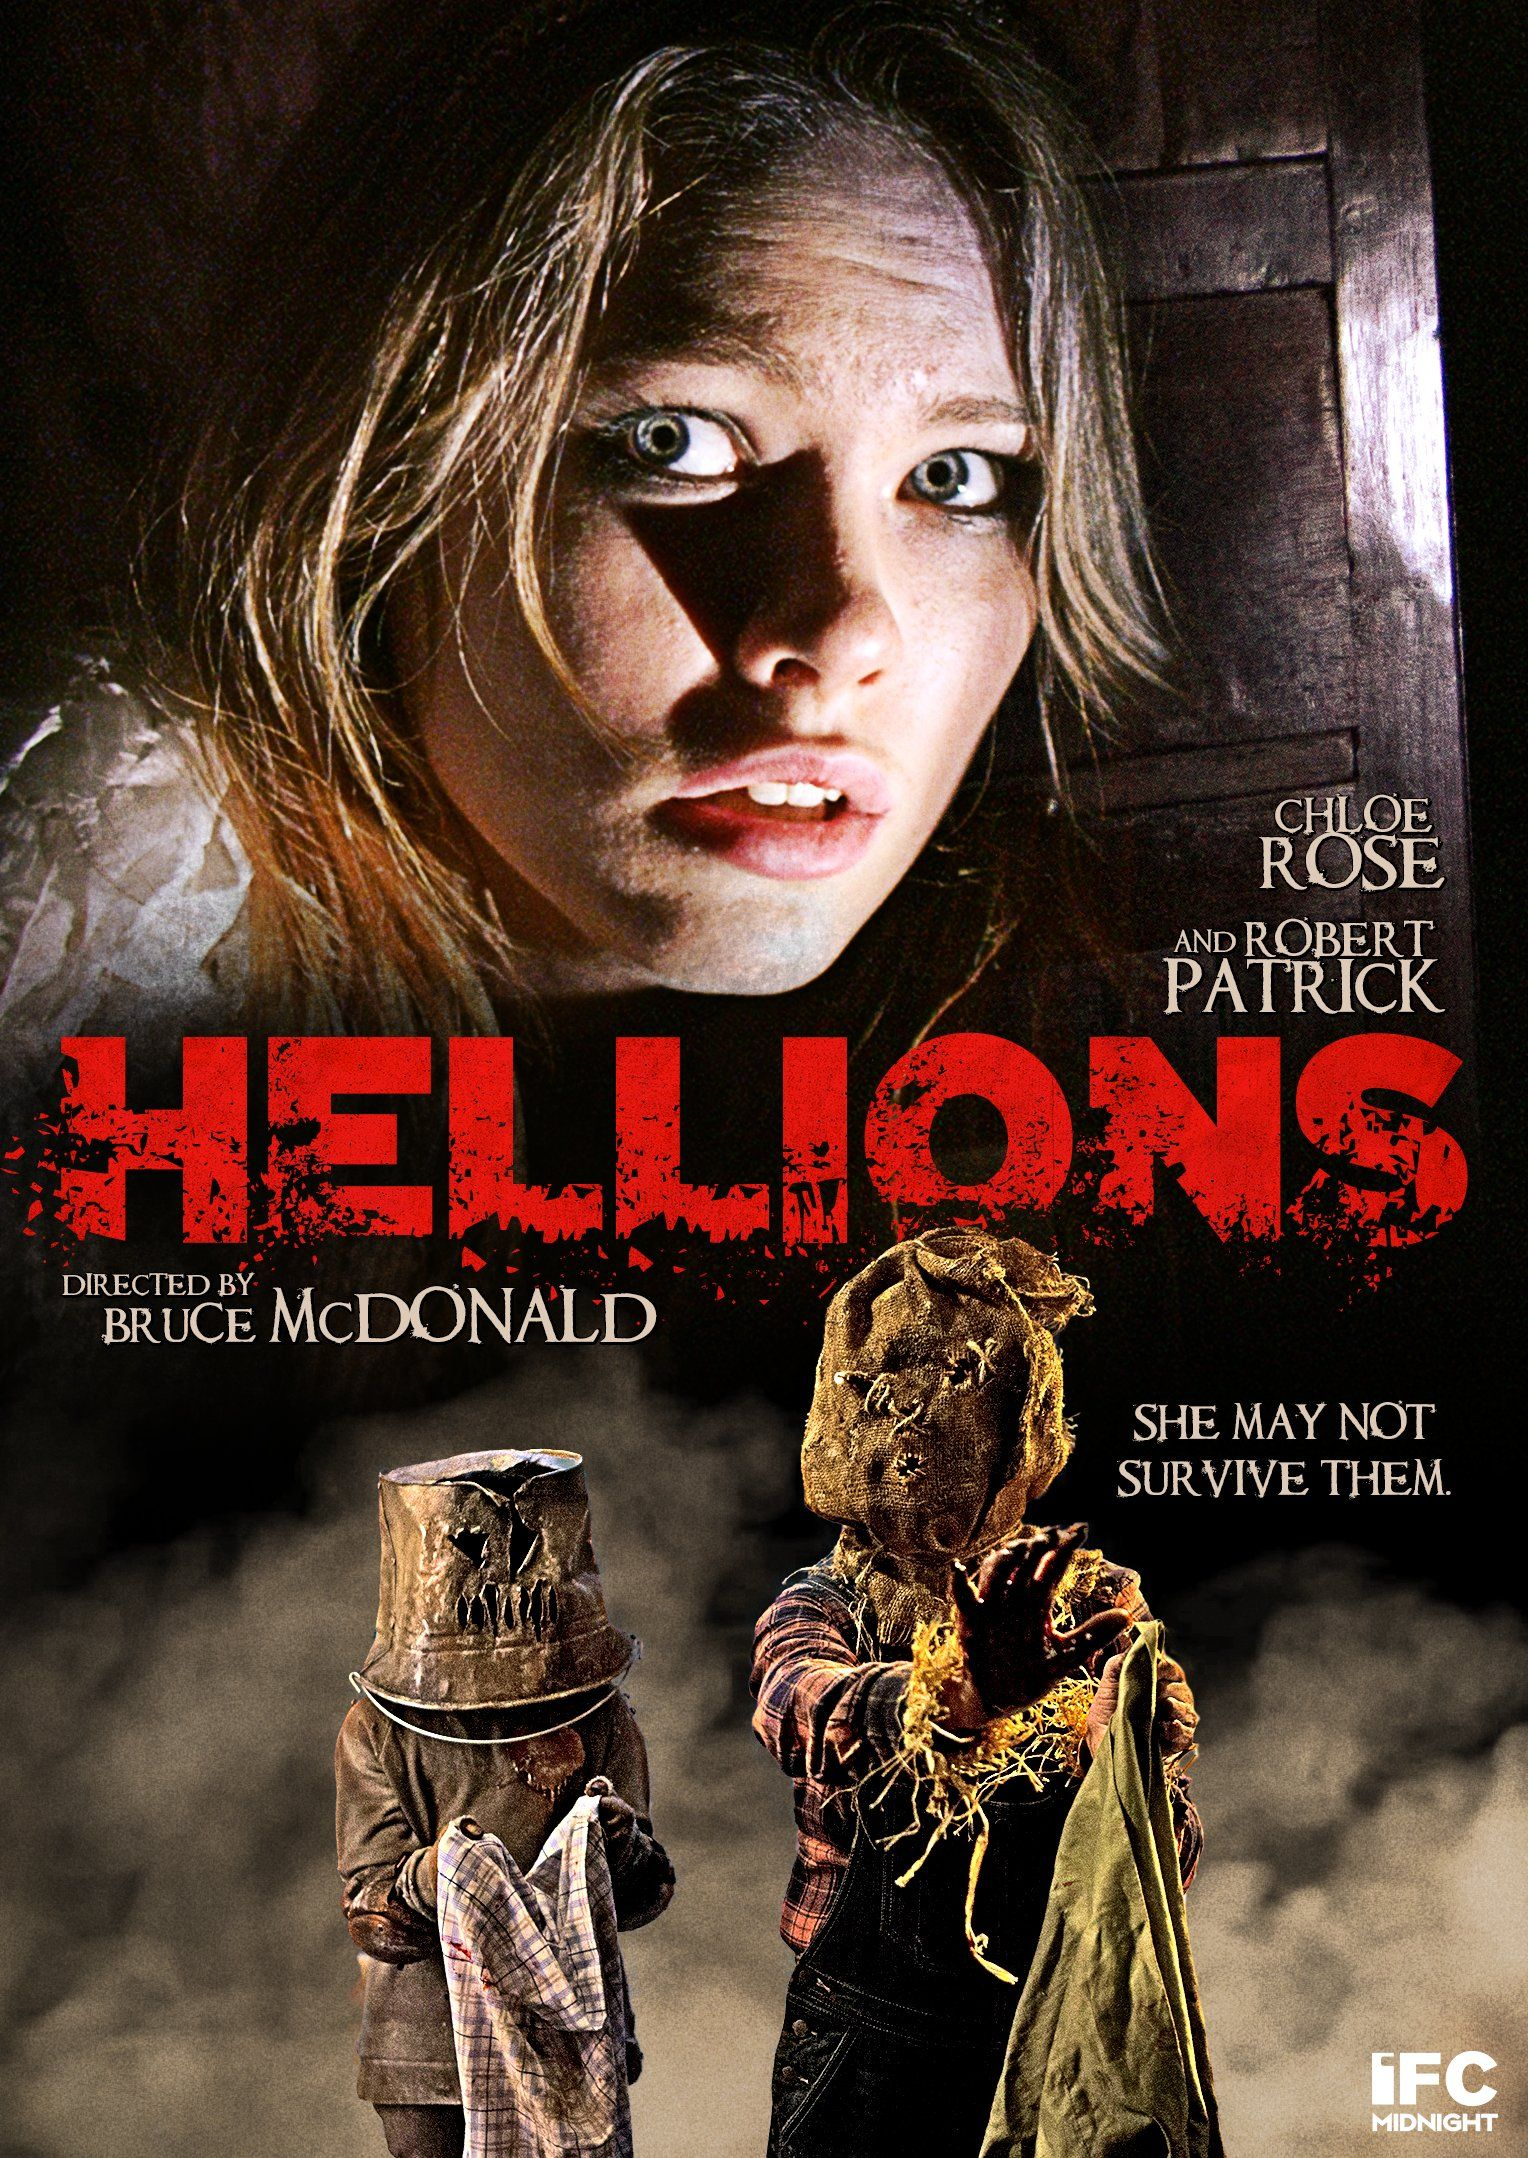 This was dumb. Hellion, Chloe rose, Horror movie posters